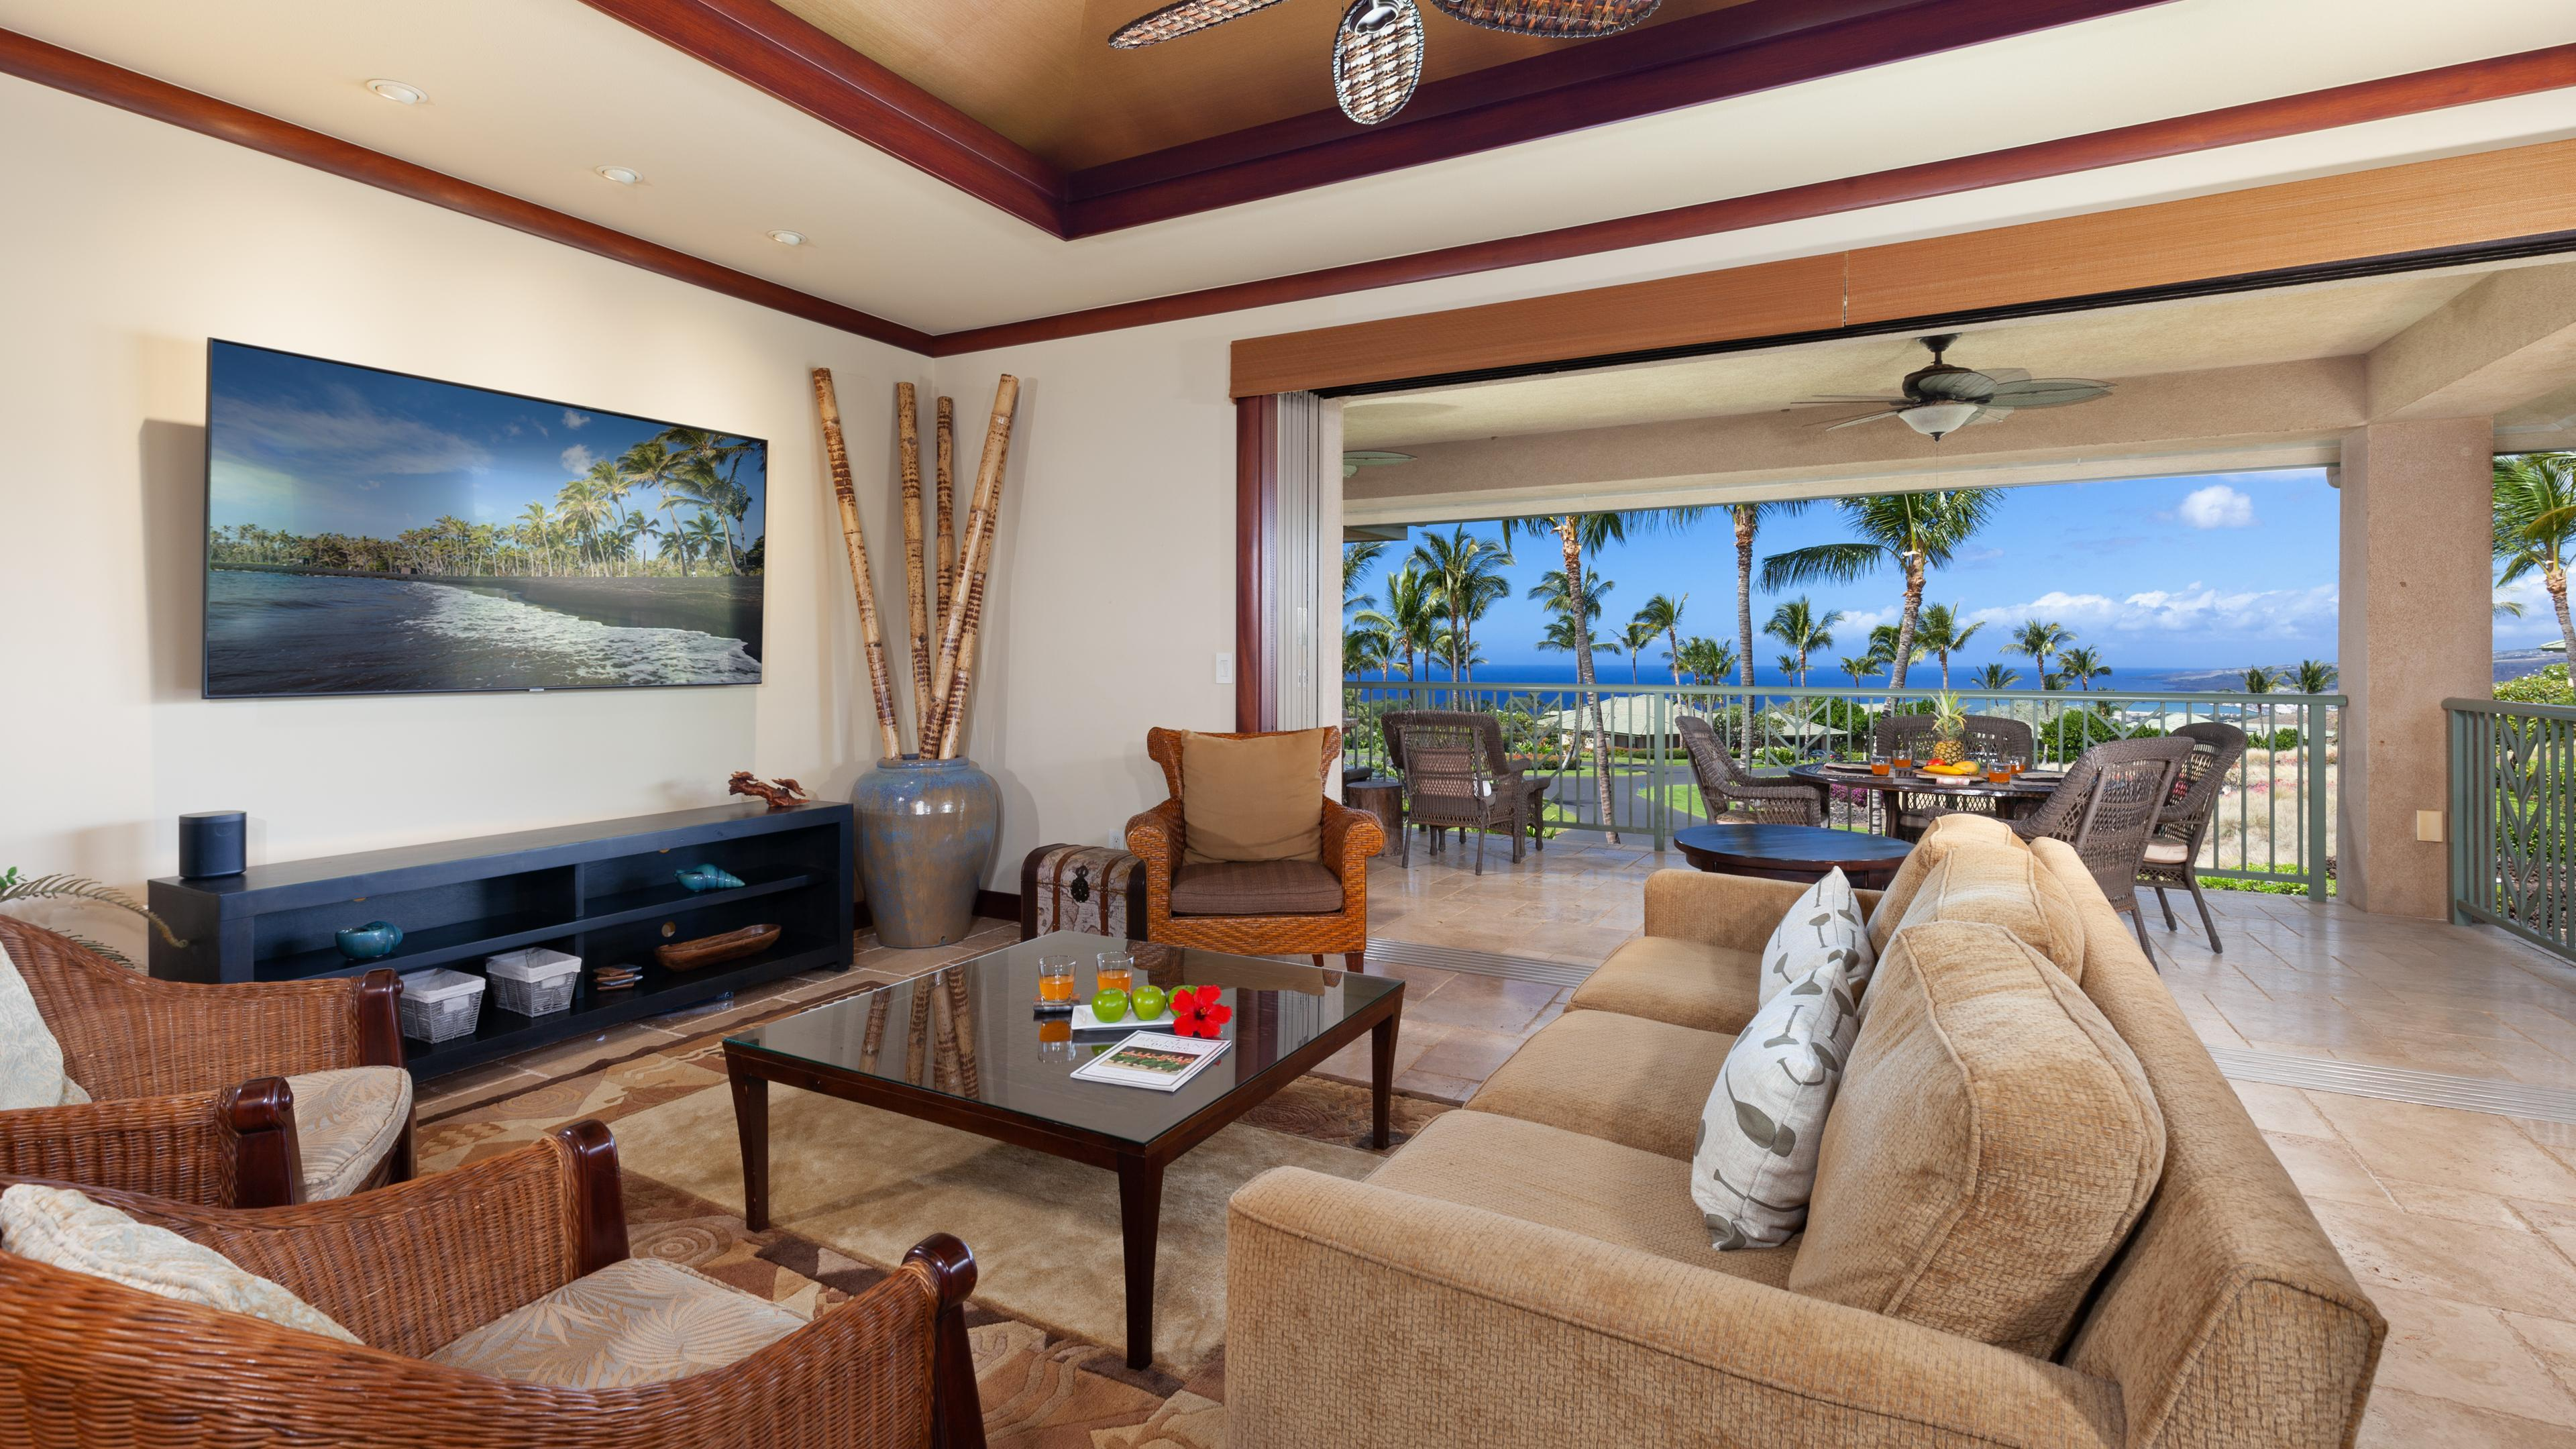 Refined 3BR Wai'ula'ula Home with Stunning Ocean Views